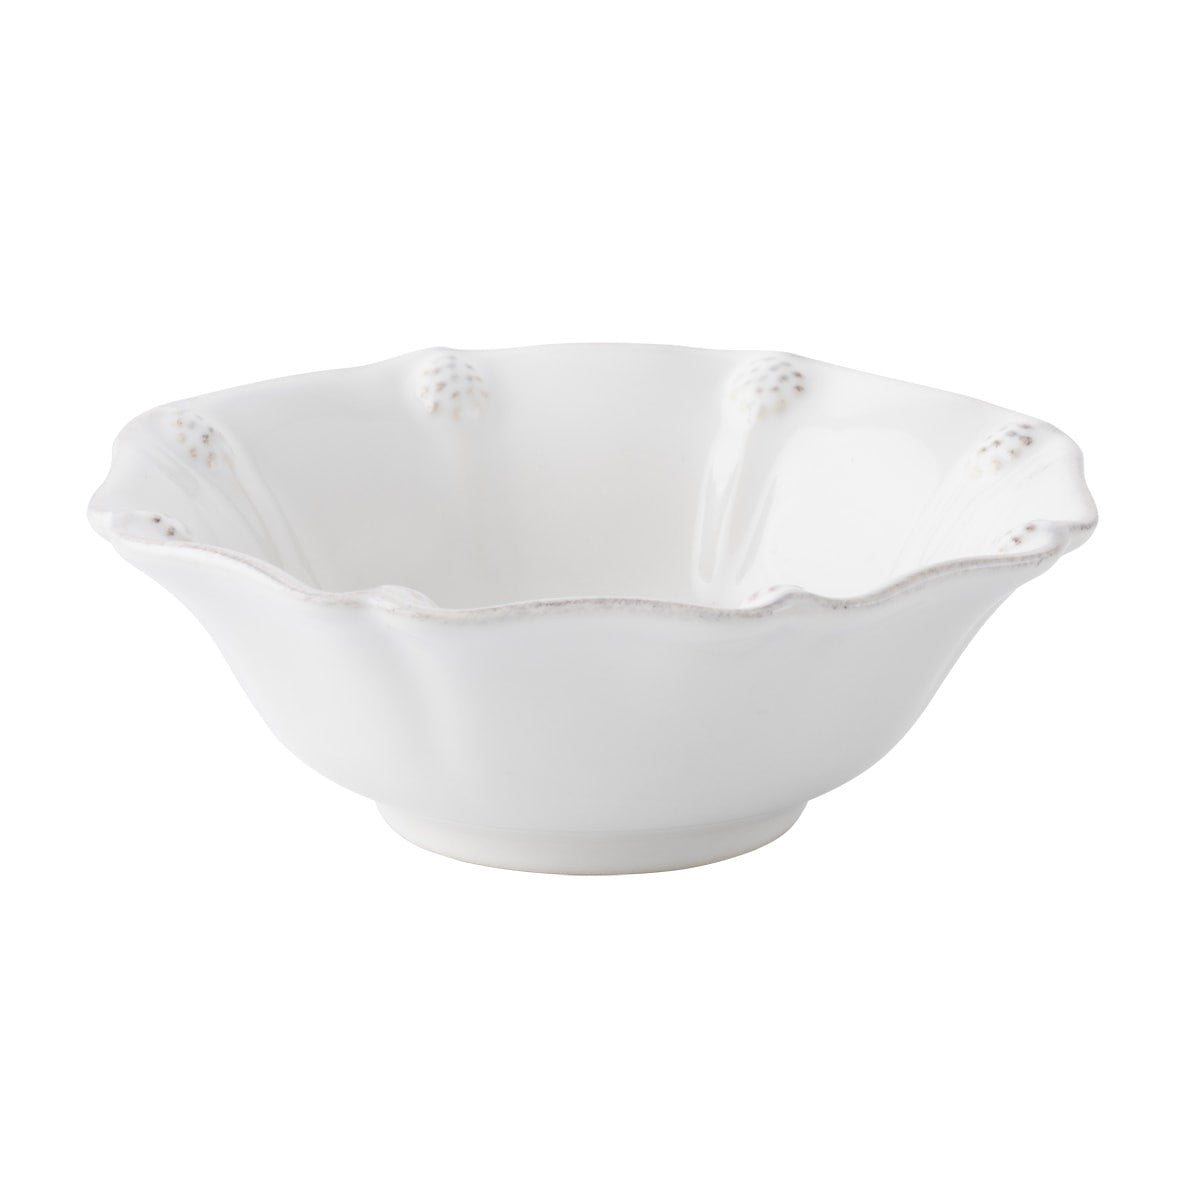 Juliska B&T Wht Berry Bowl